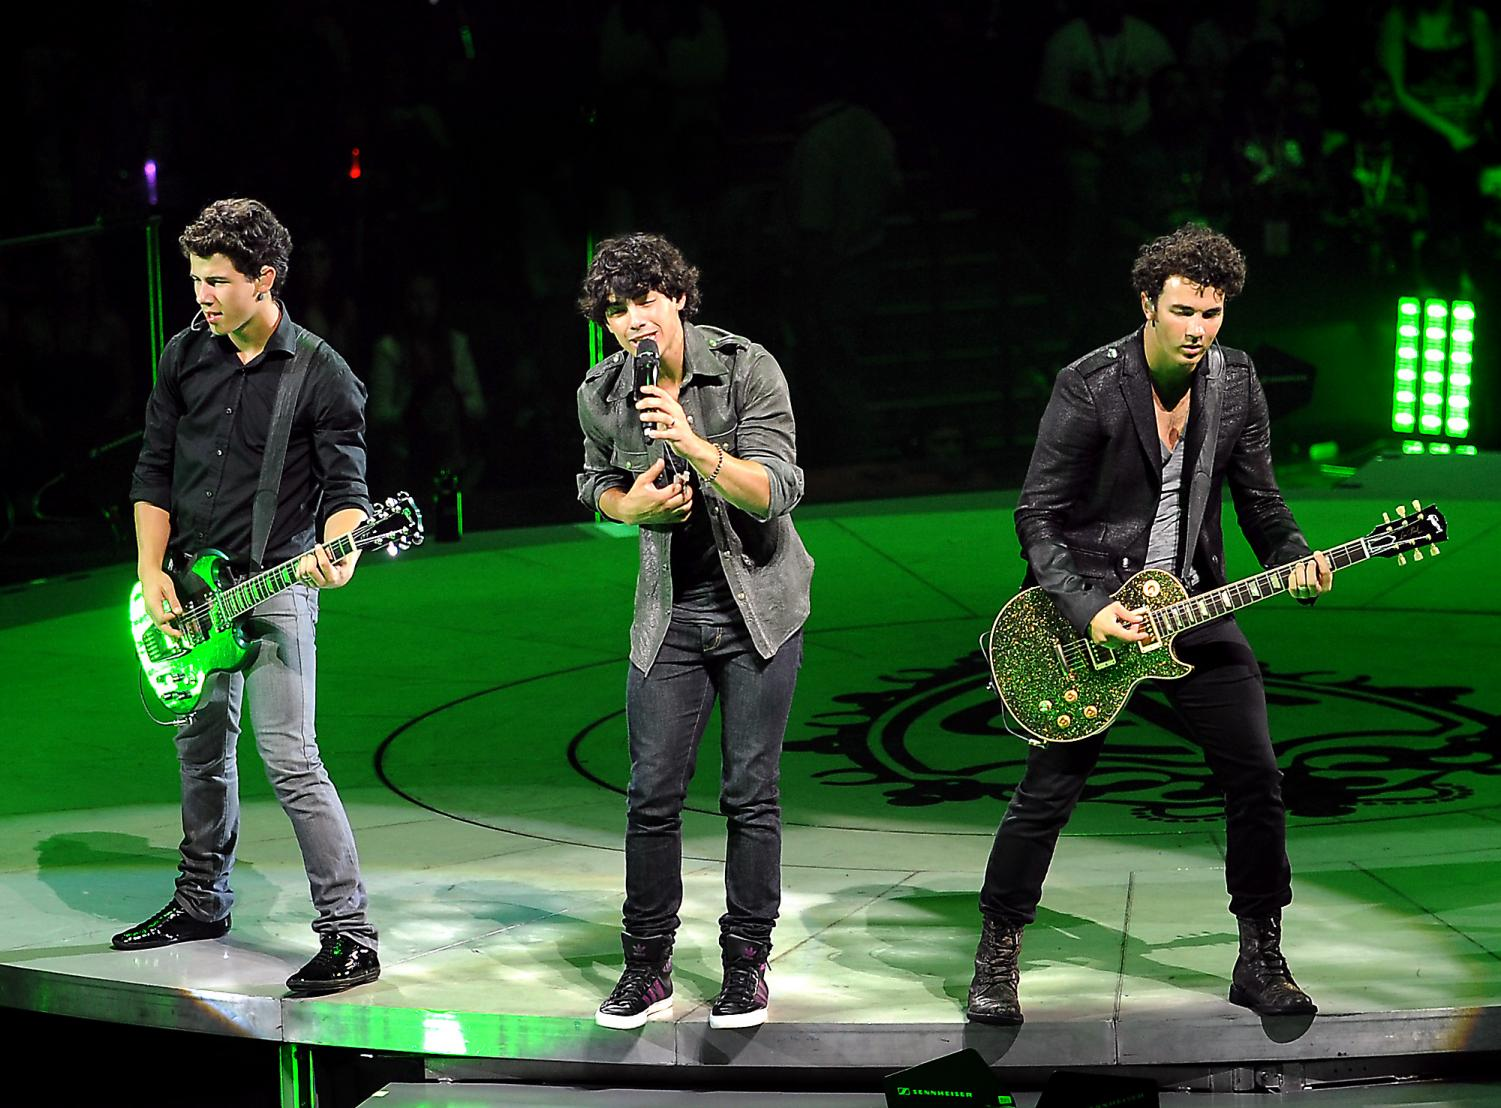 The Jonas Brothers perform at the Bank Atlantic Center in Sunrise, Florida, Wednesday, August 19, 2009. (Robert Duyos/Sun-Sentinel/TNS)